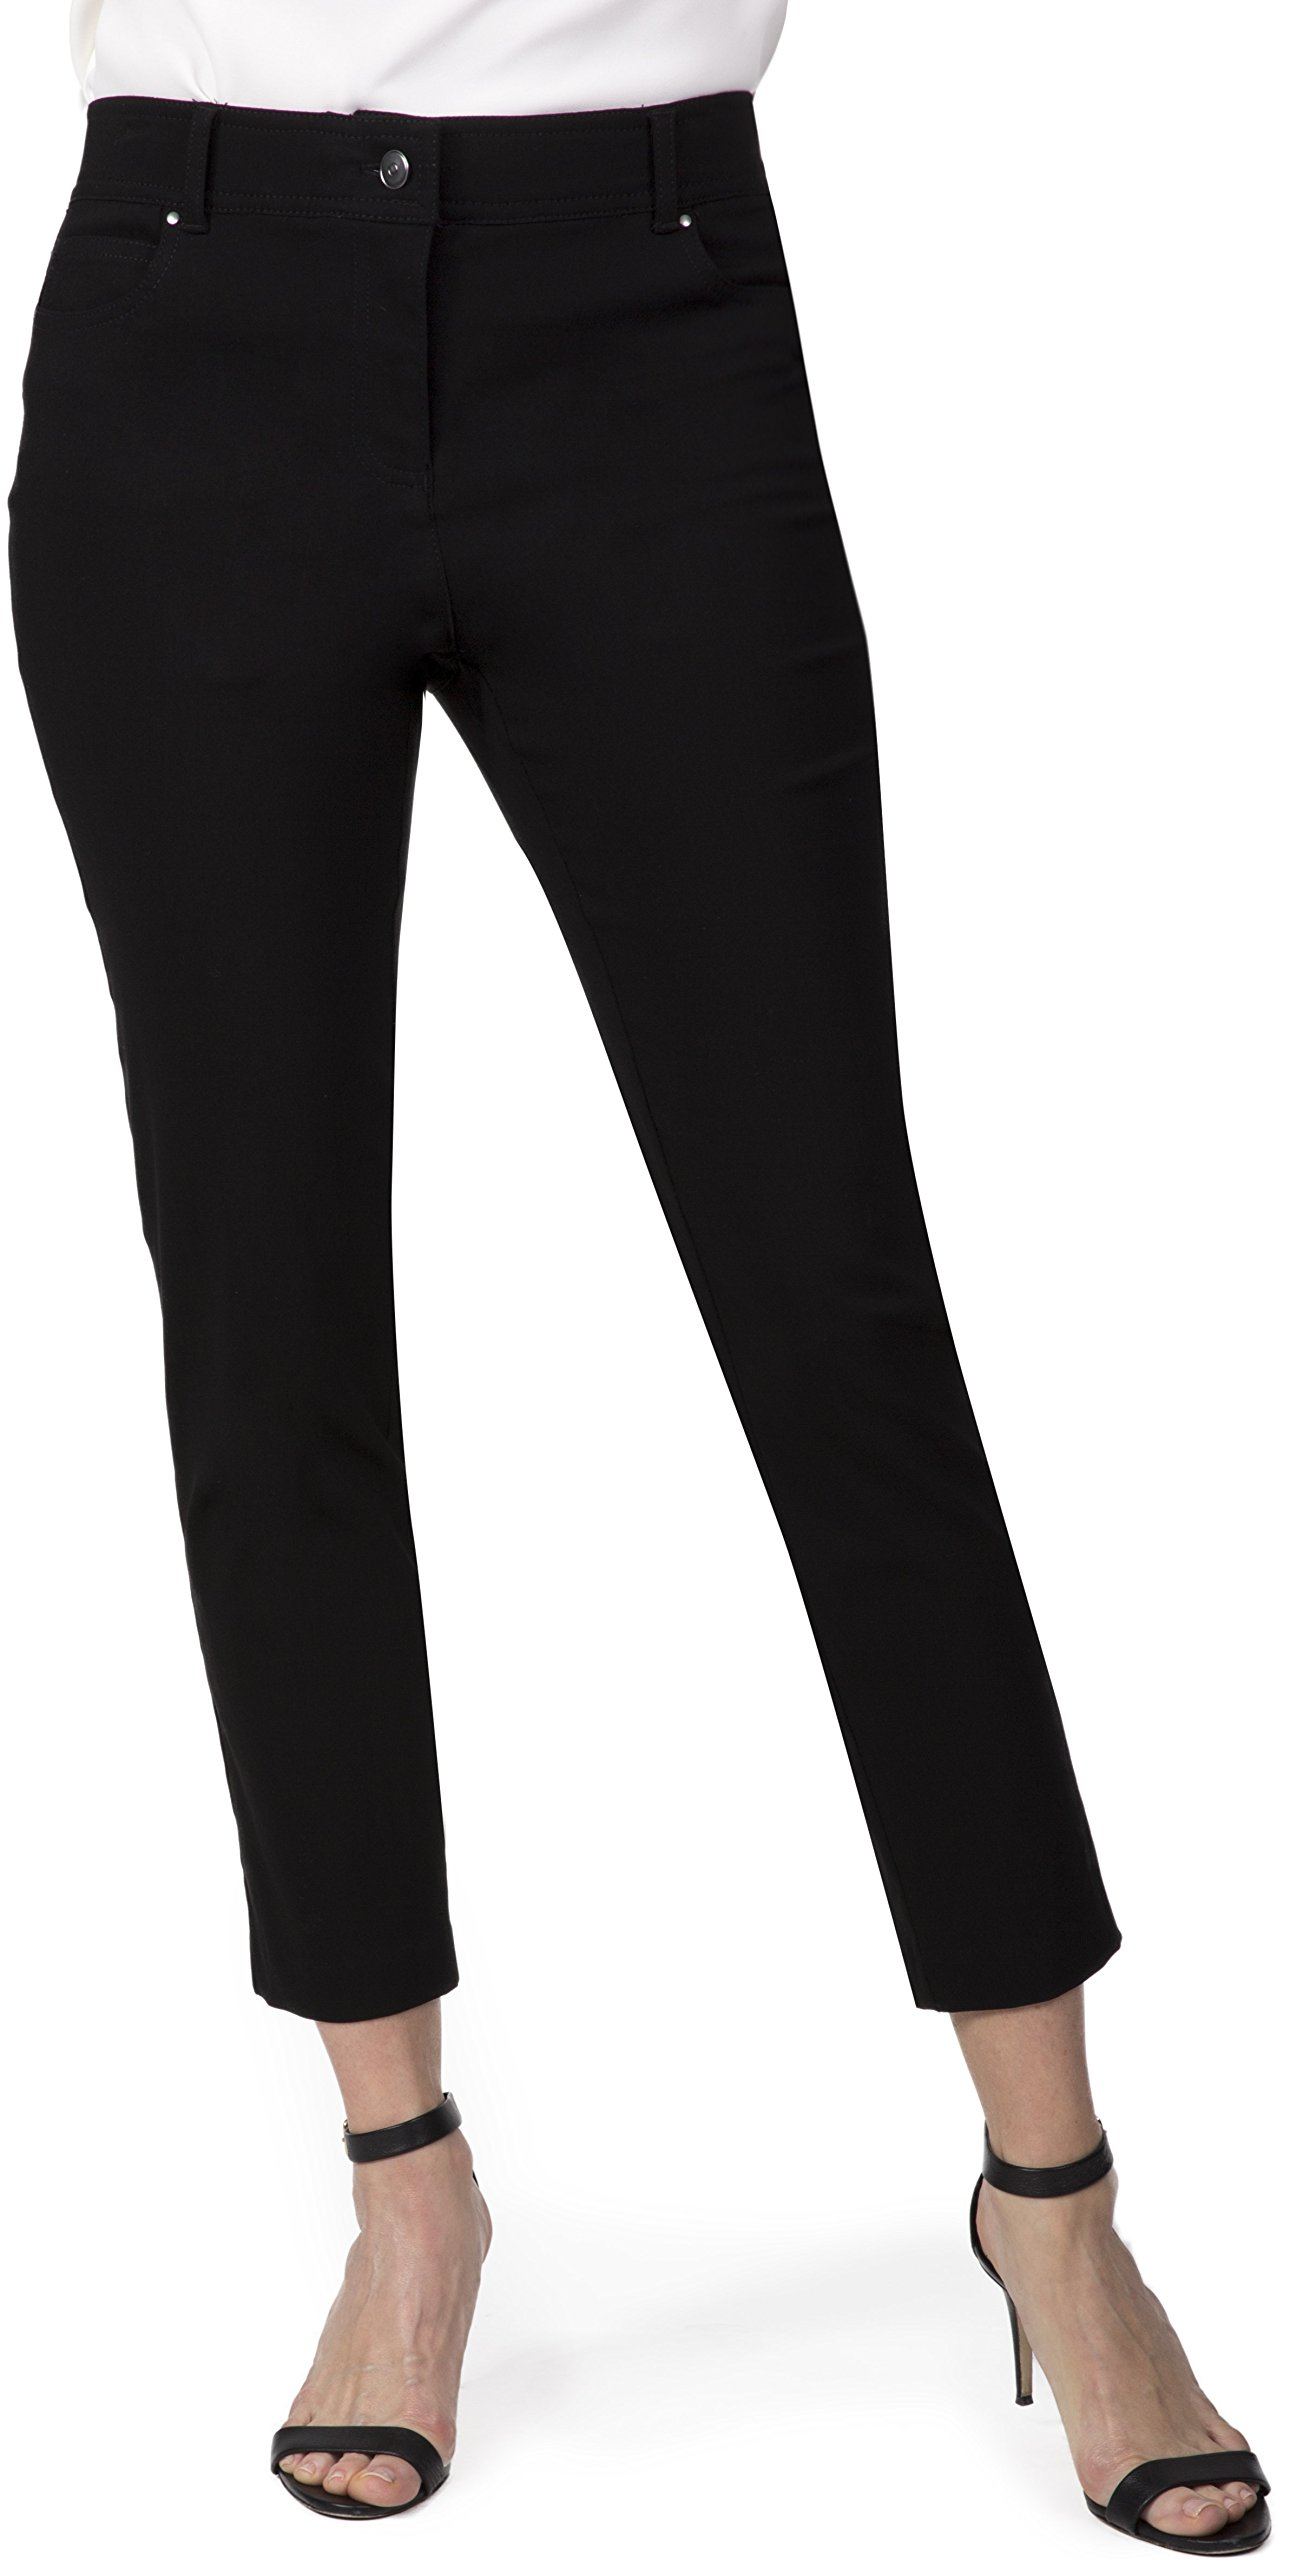 Fundamental Things Women's Comfort Waist Slim Ankle Pant, Size 10